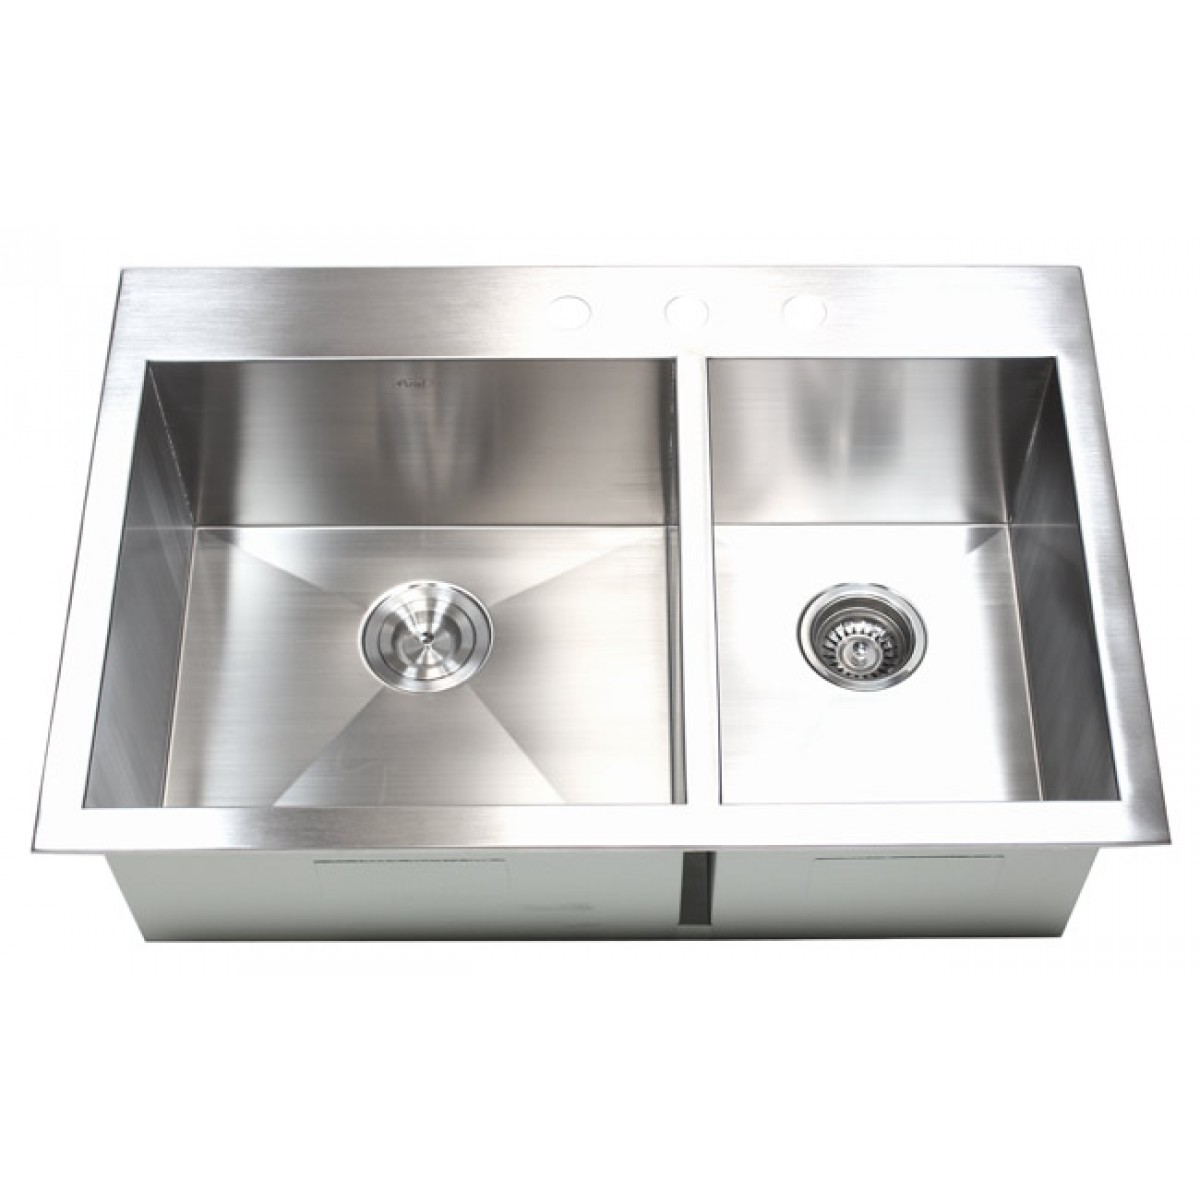 33 Inch Top Mount / Drop In Stainless Steel 60/40 Double Bowl Kitchen Sink  Zero Radius Design